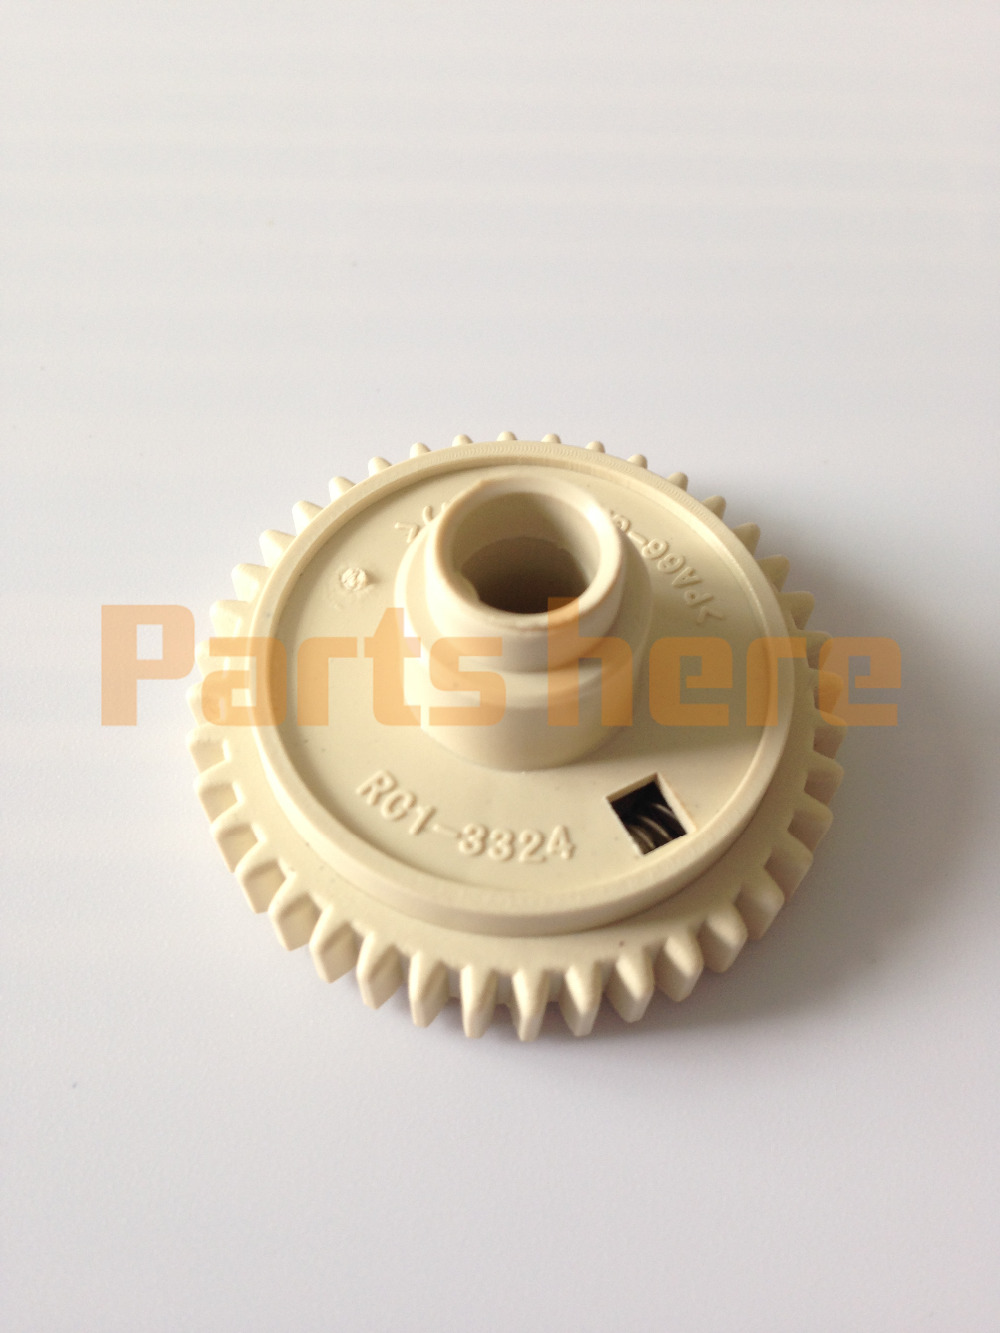 RC1-3324 RC1-3325 RC1-3324-000 RC1-3325-000 Upper Fuser Roller Gear Drive Gear Assembly 40T for HP 4200 4240 4250 4300 4350 4345